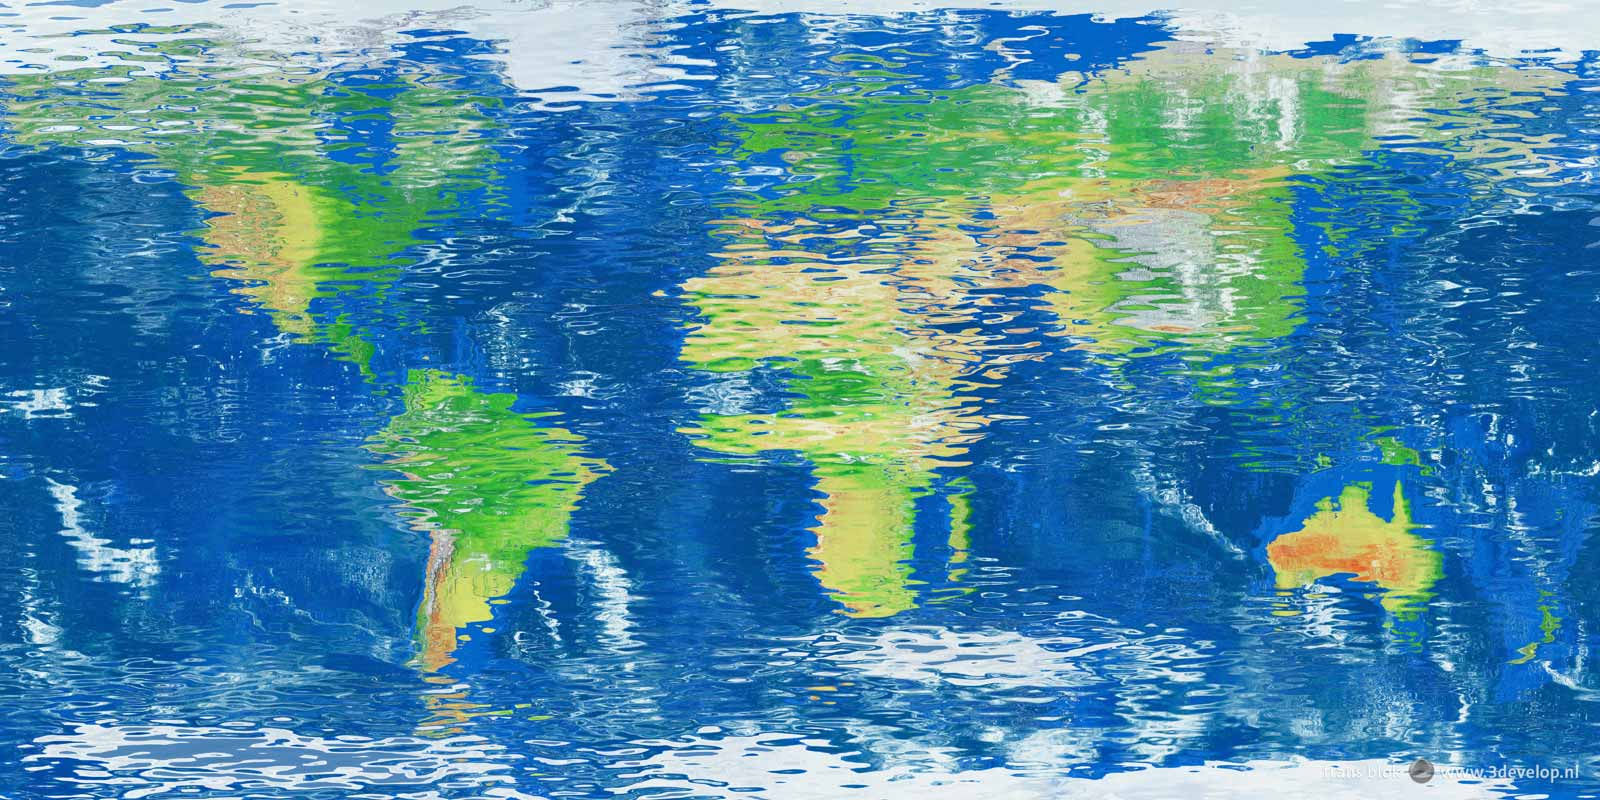 World map mirrored in a reflective and slightly undulating water surface